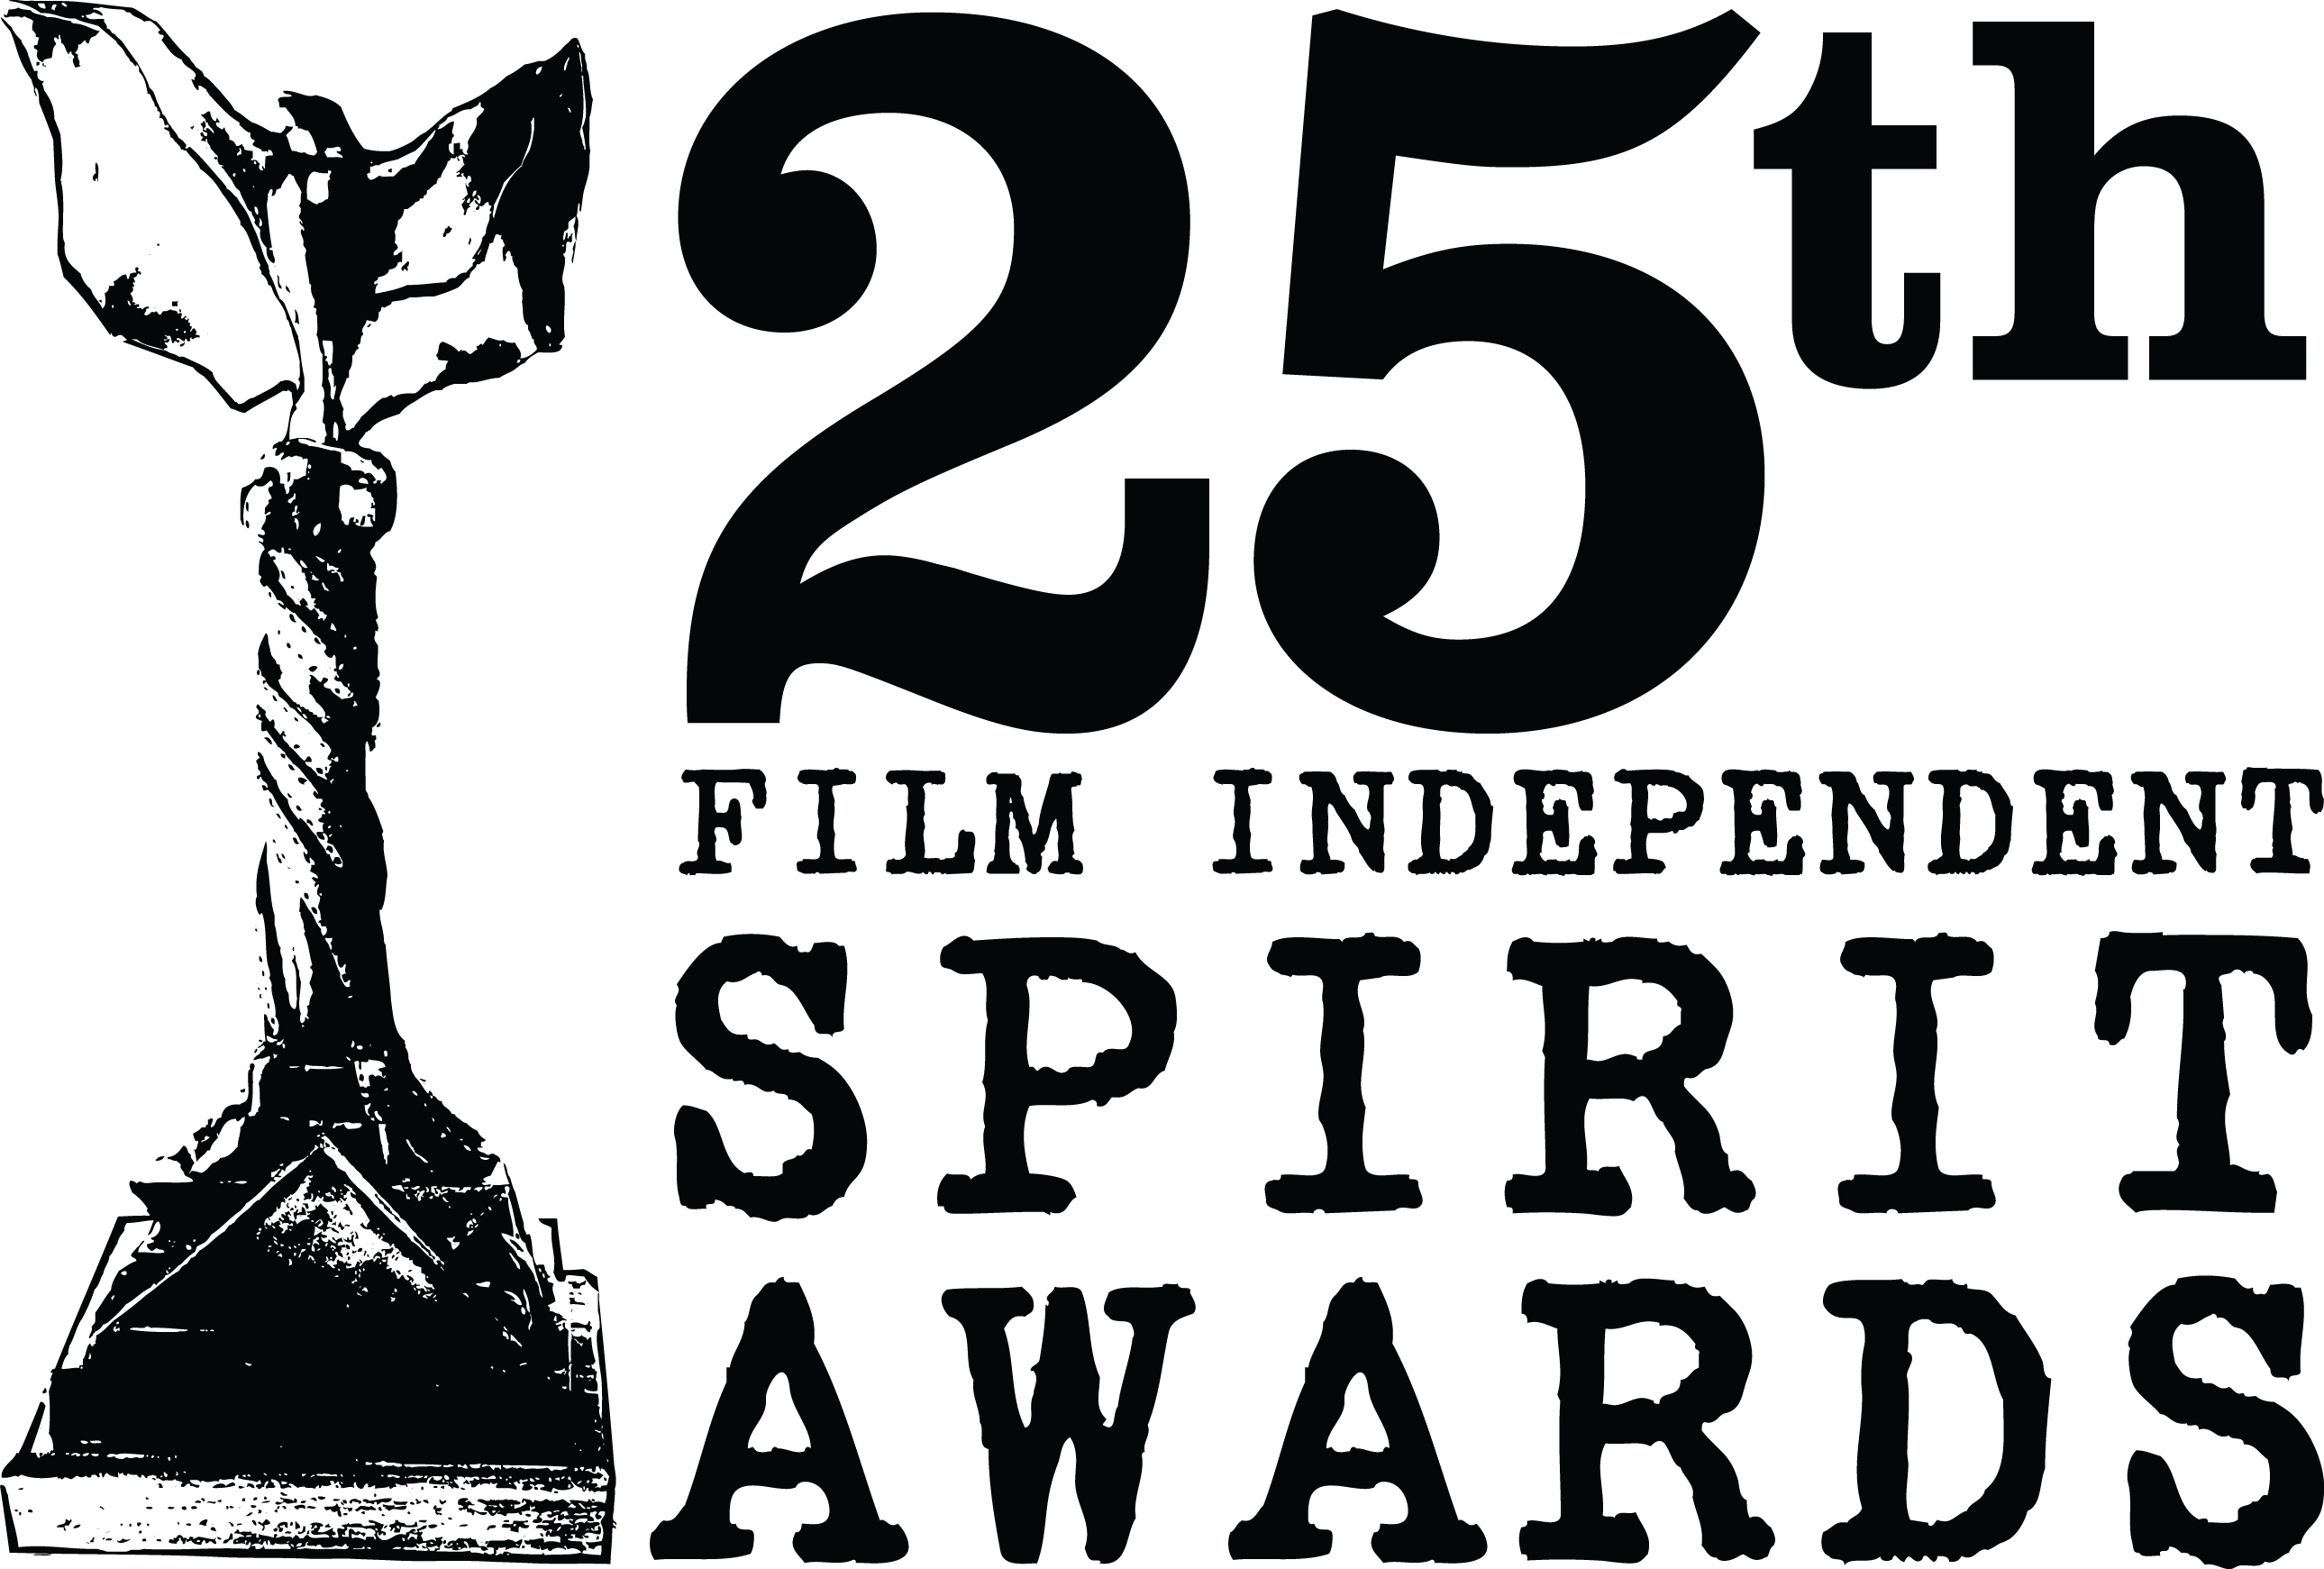 Film Independent Logo The 25th Film Independent